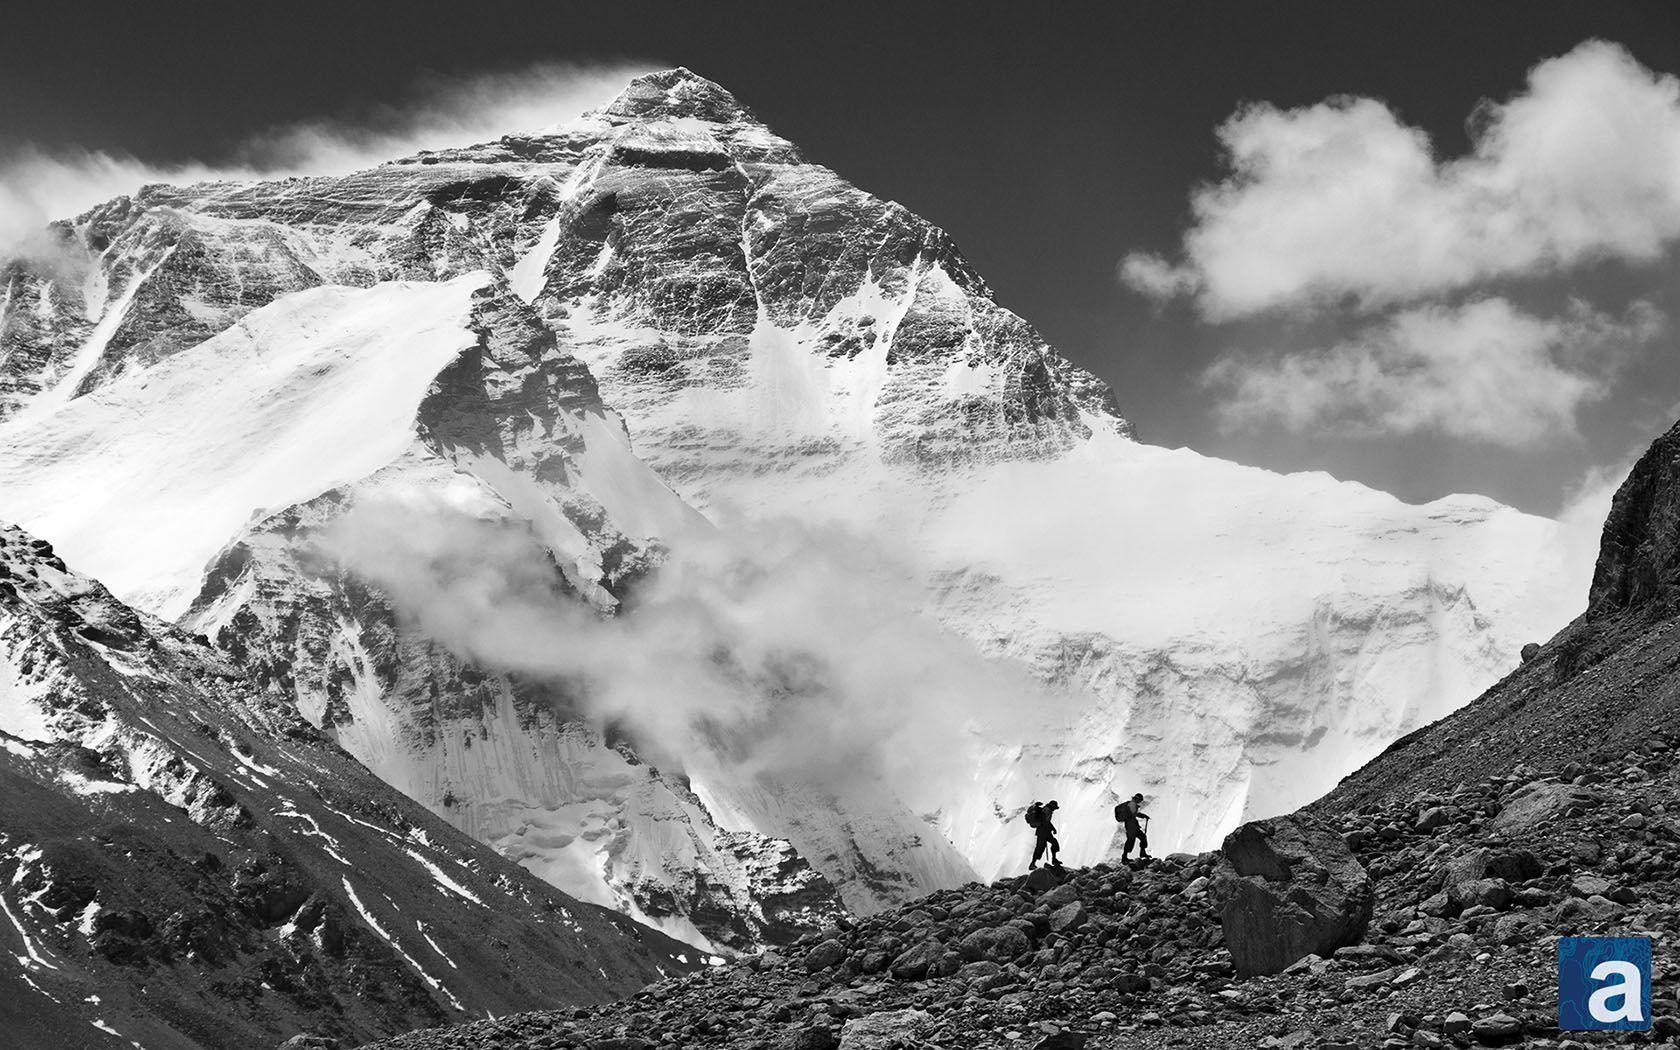 Wallpapers Wednesday: Mt. Everest